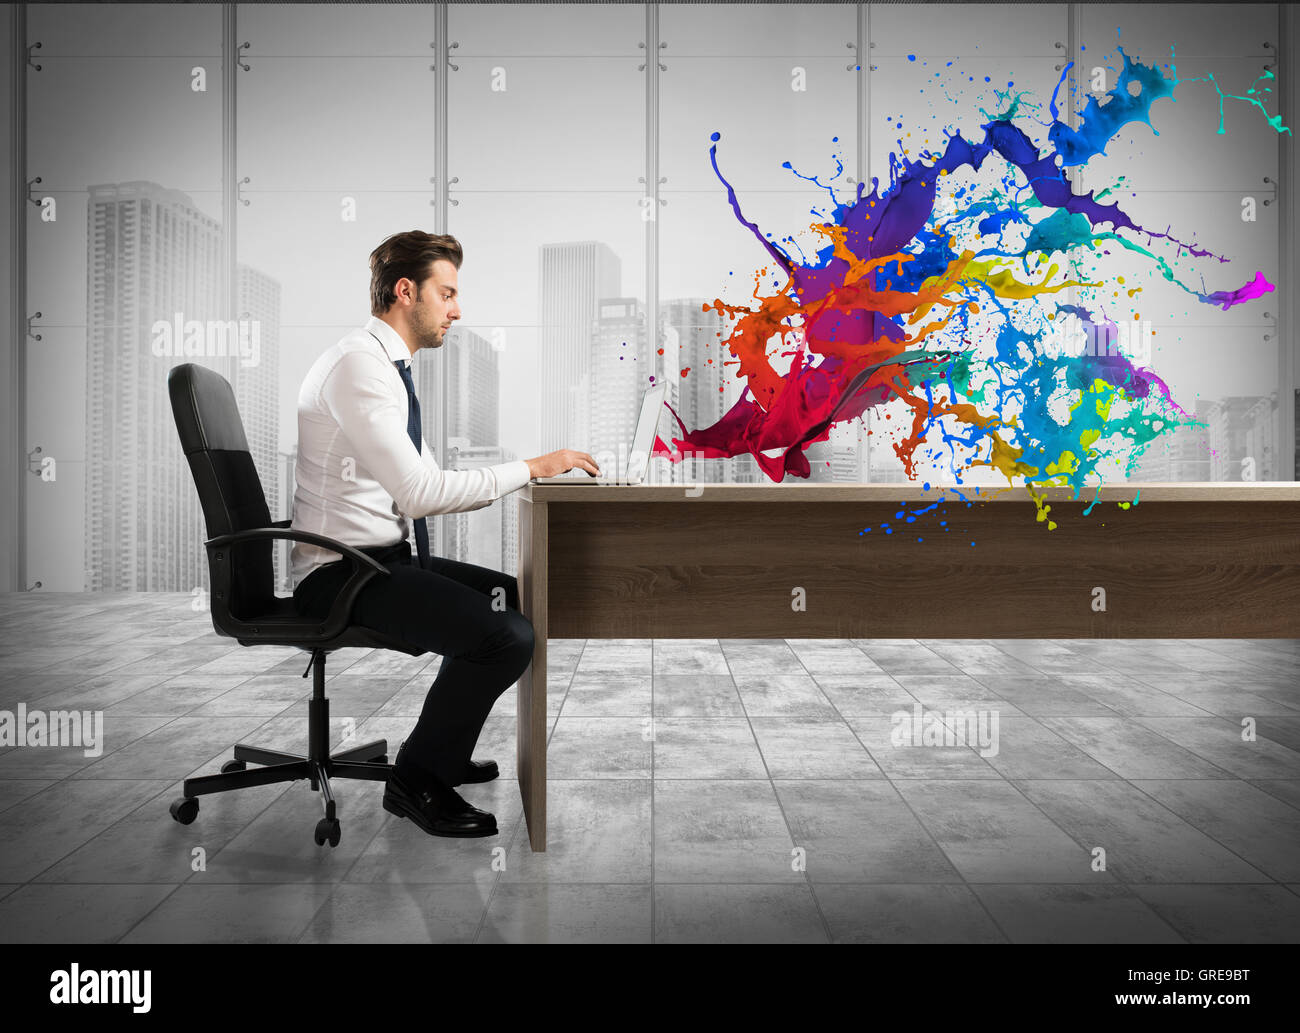 Concept of creative business with businessman working with laptop - Stock Image